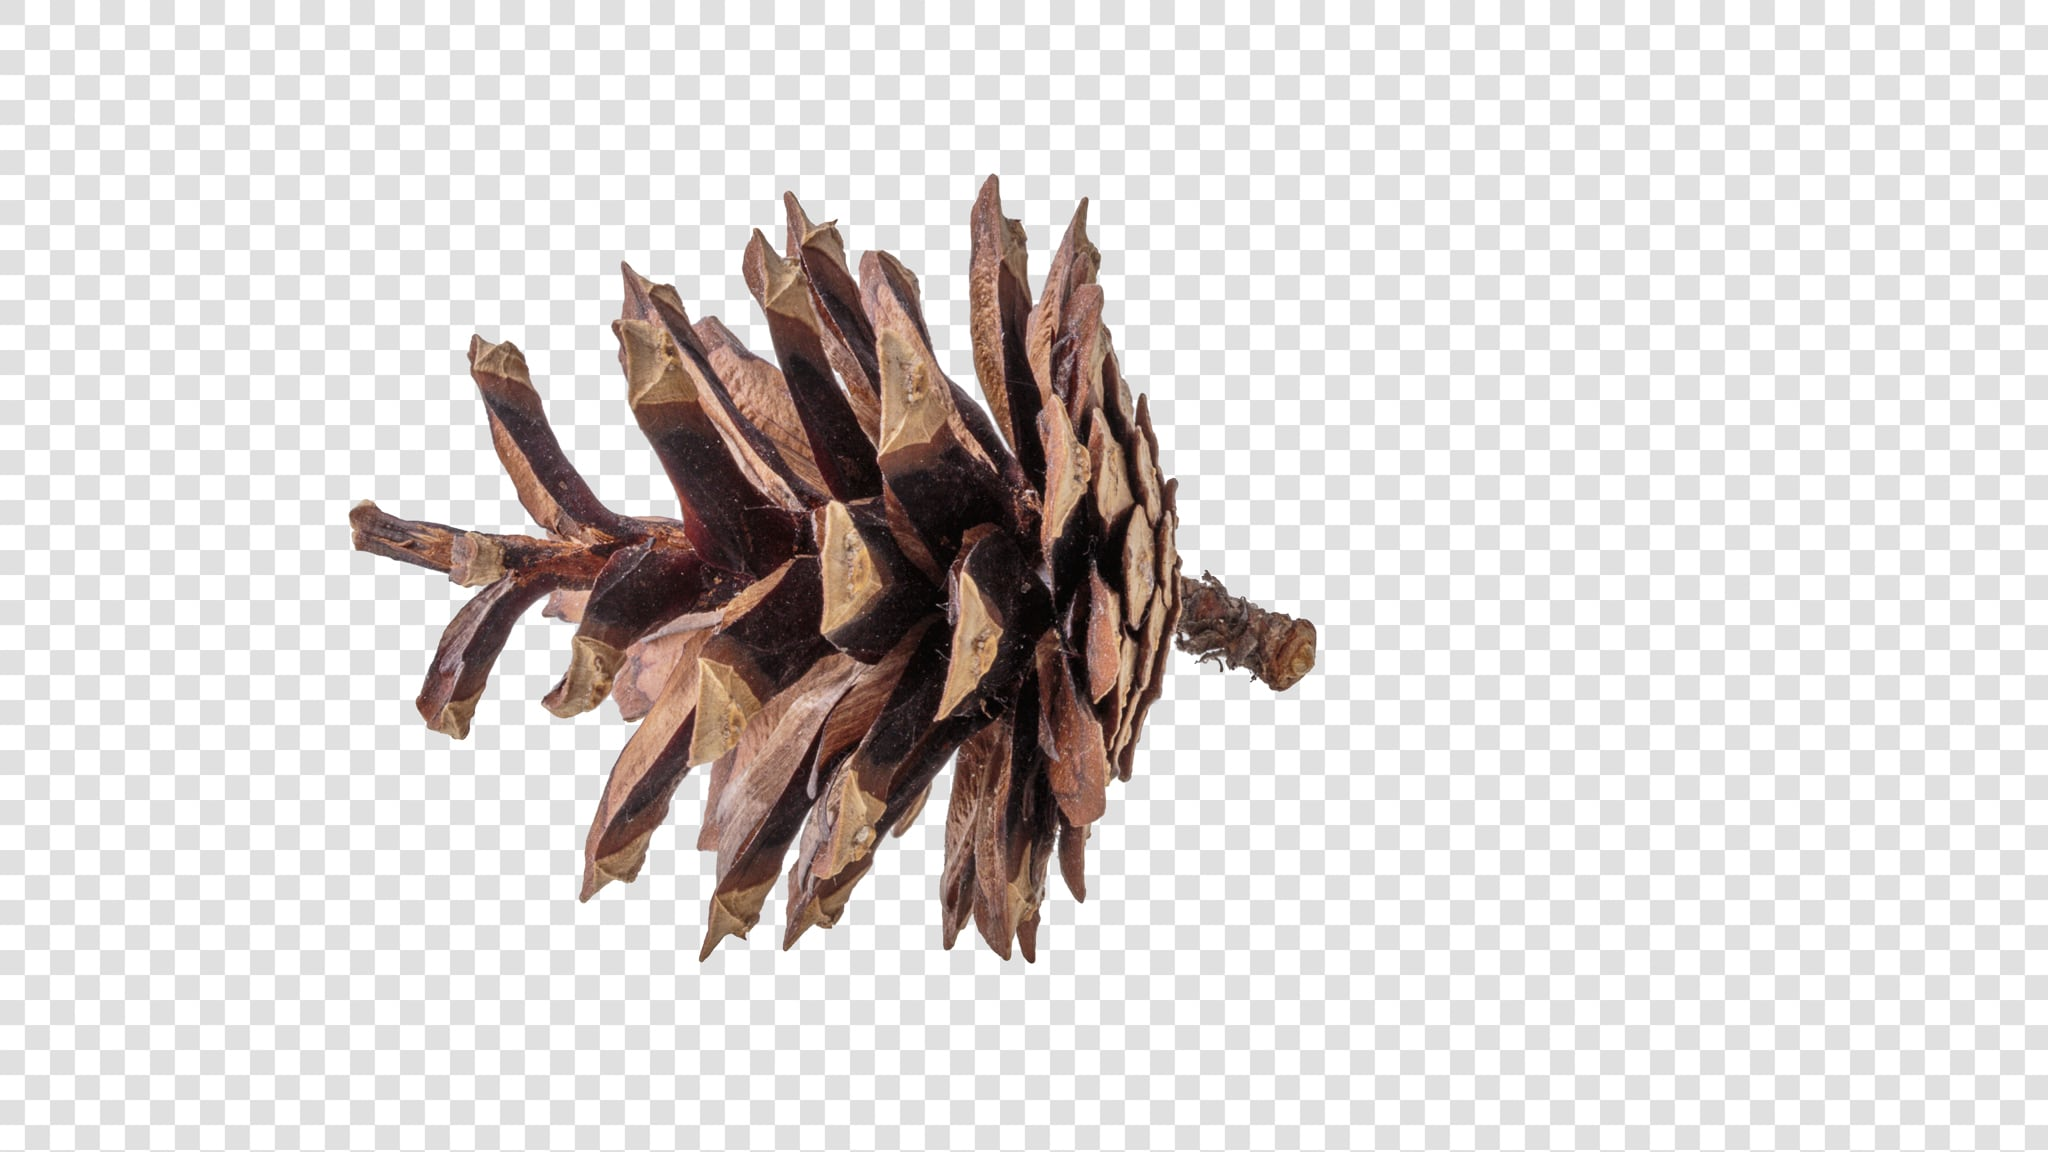 Dried flower image with transparent background